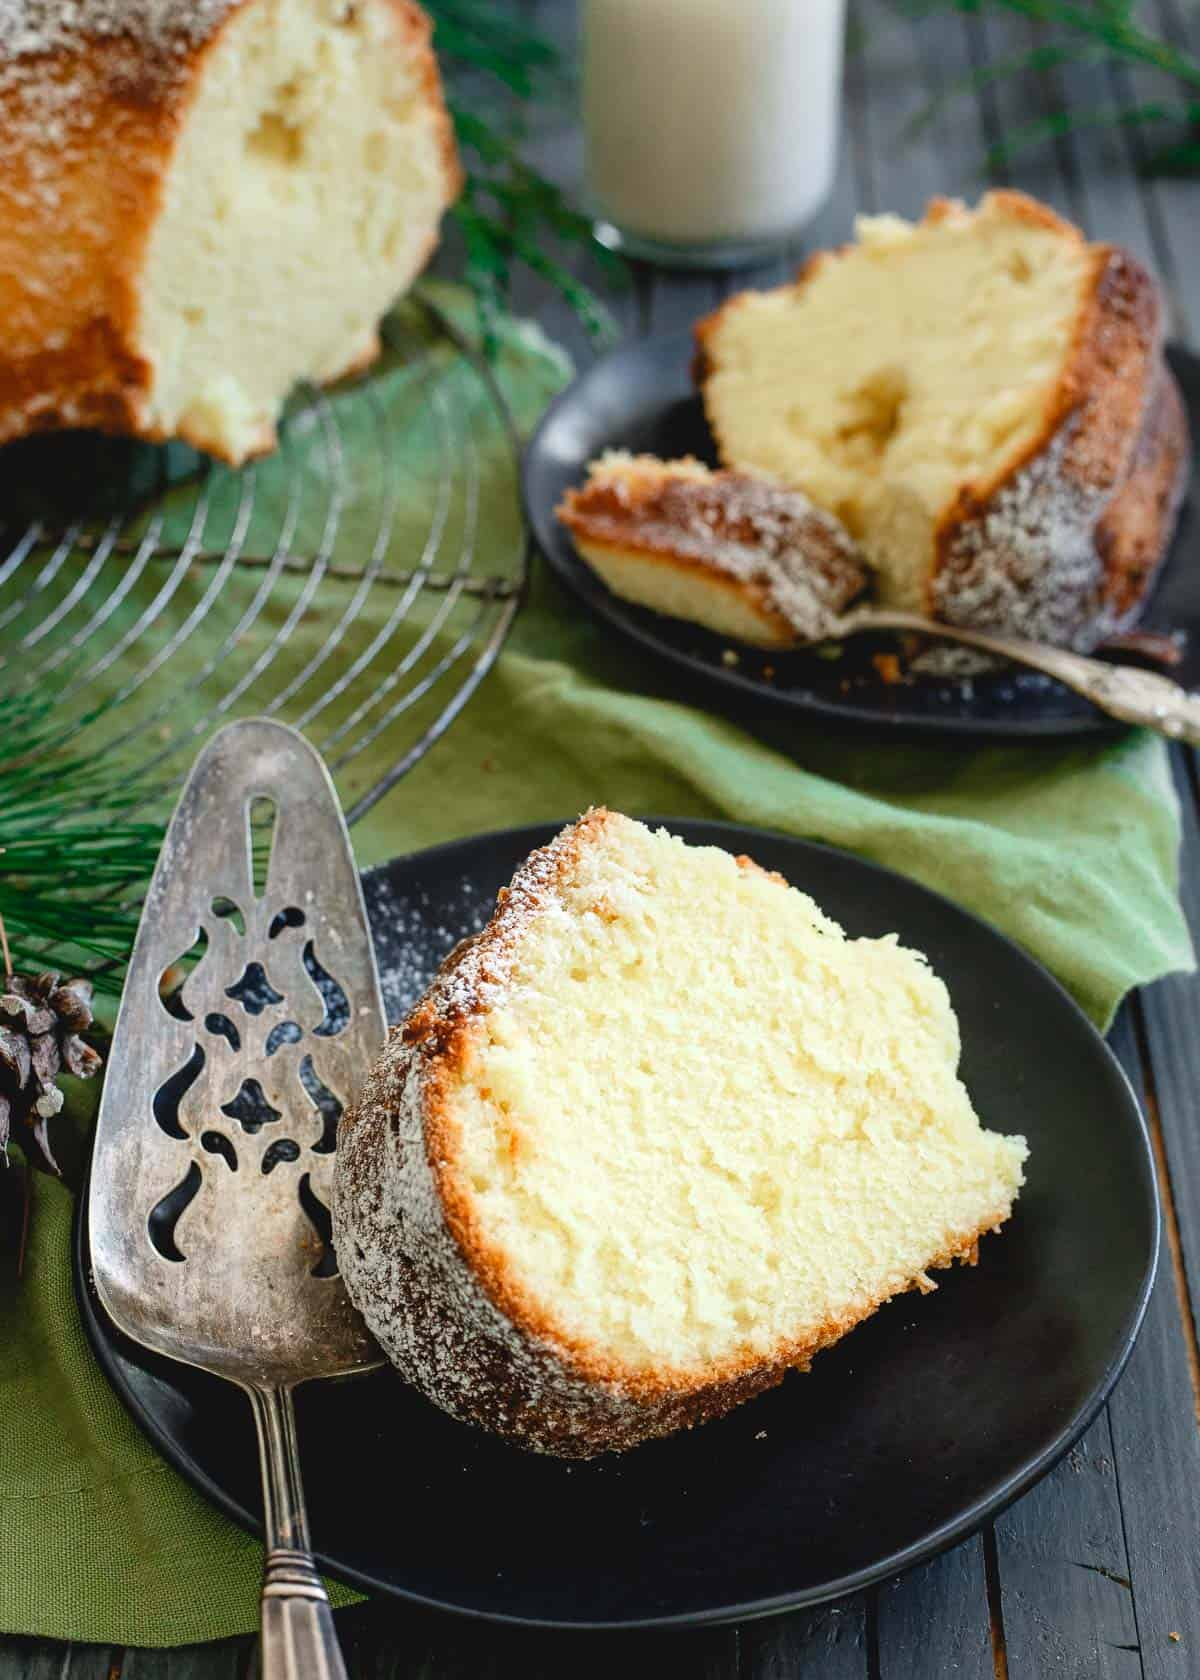 This apricot brandy pound cake comes together in minutes in your mixer but explodes with flavors in the moist, dense bundt cake. Make it this holiday season!